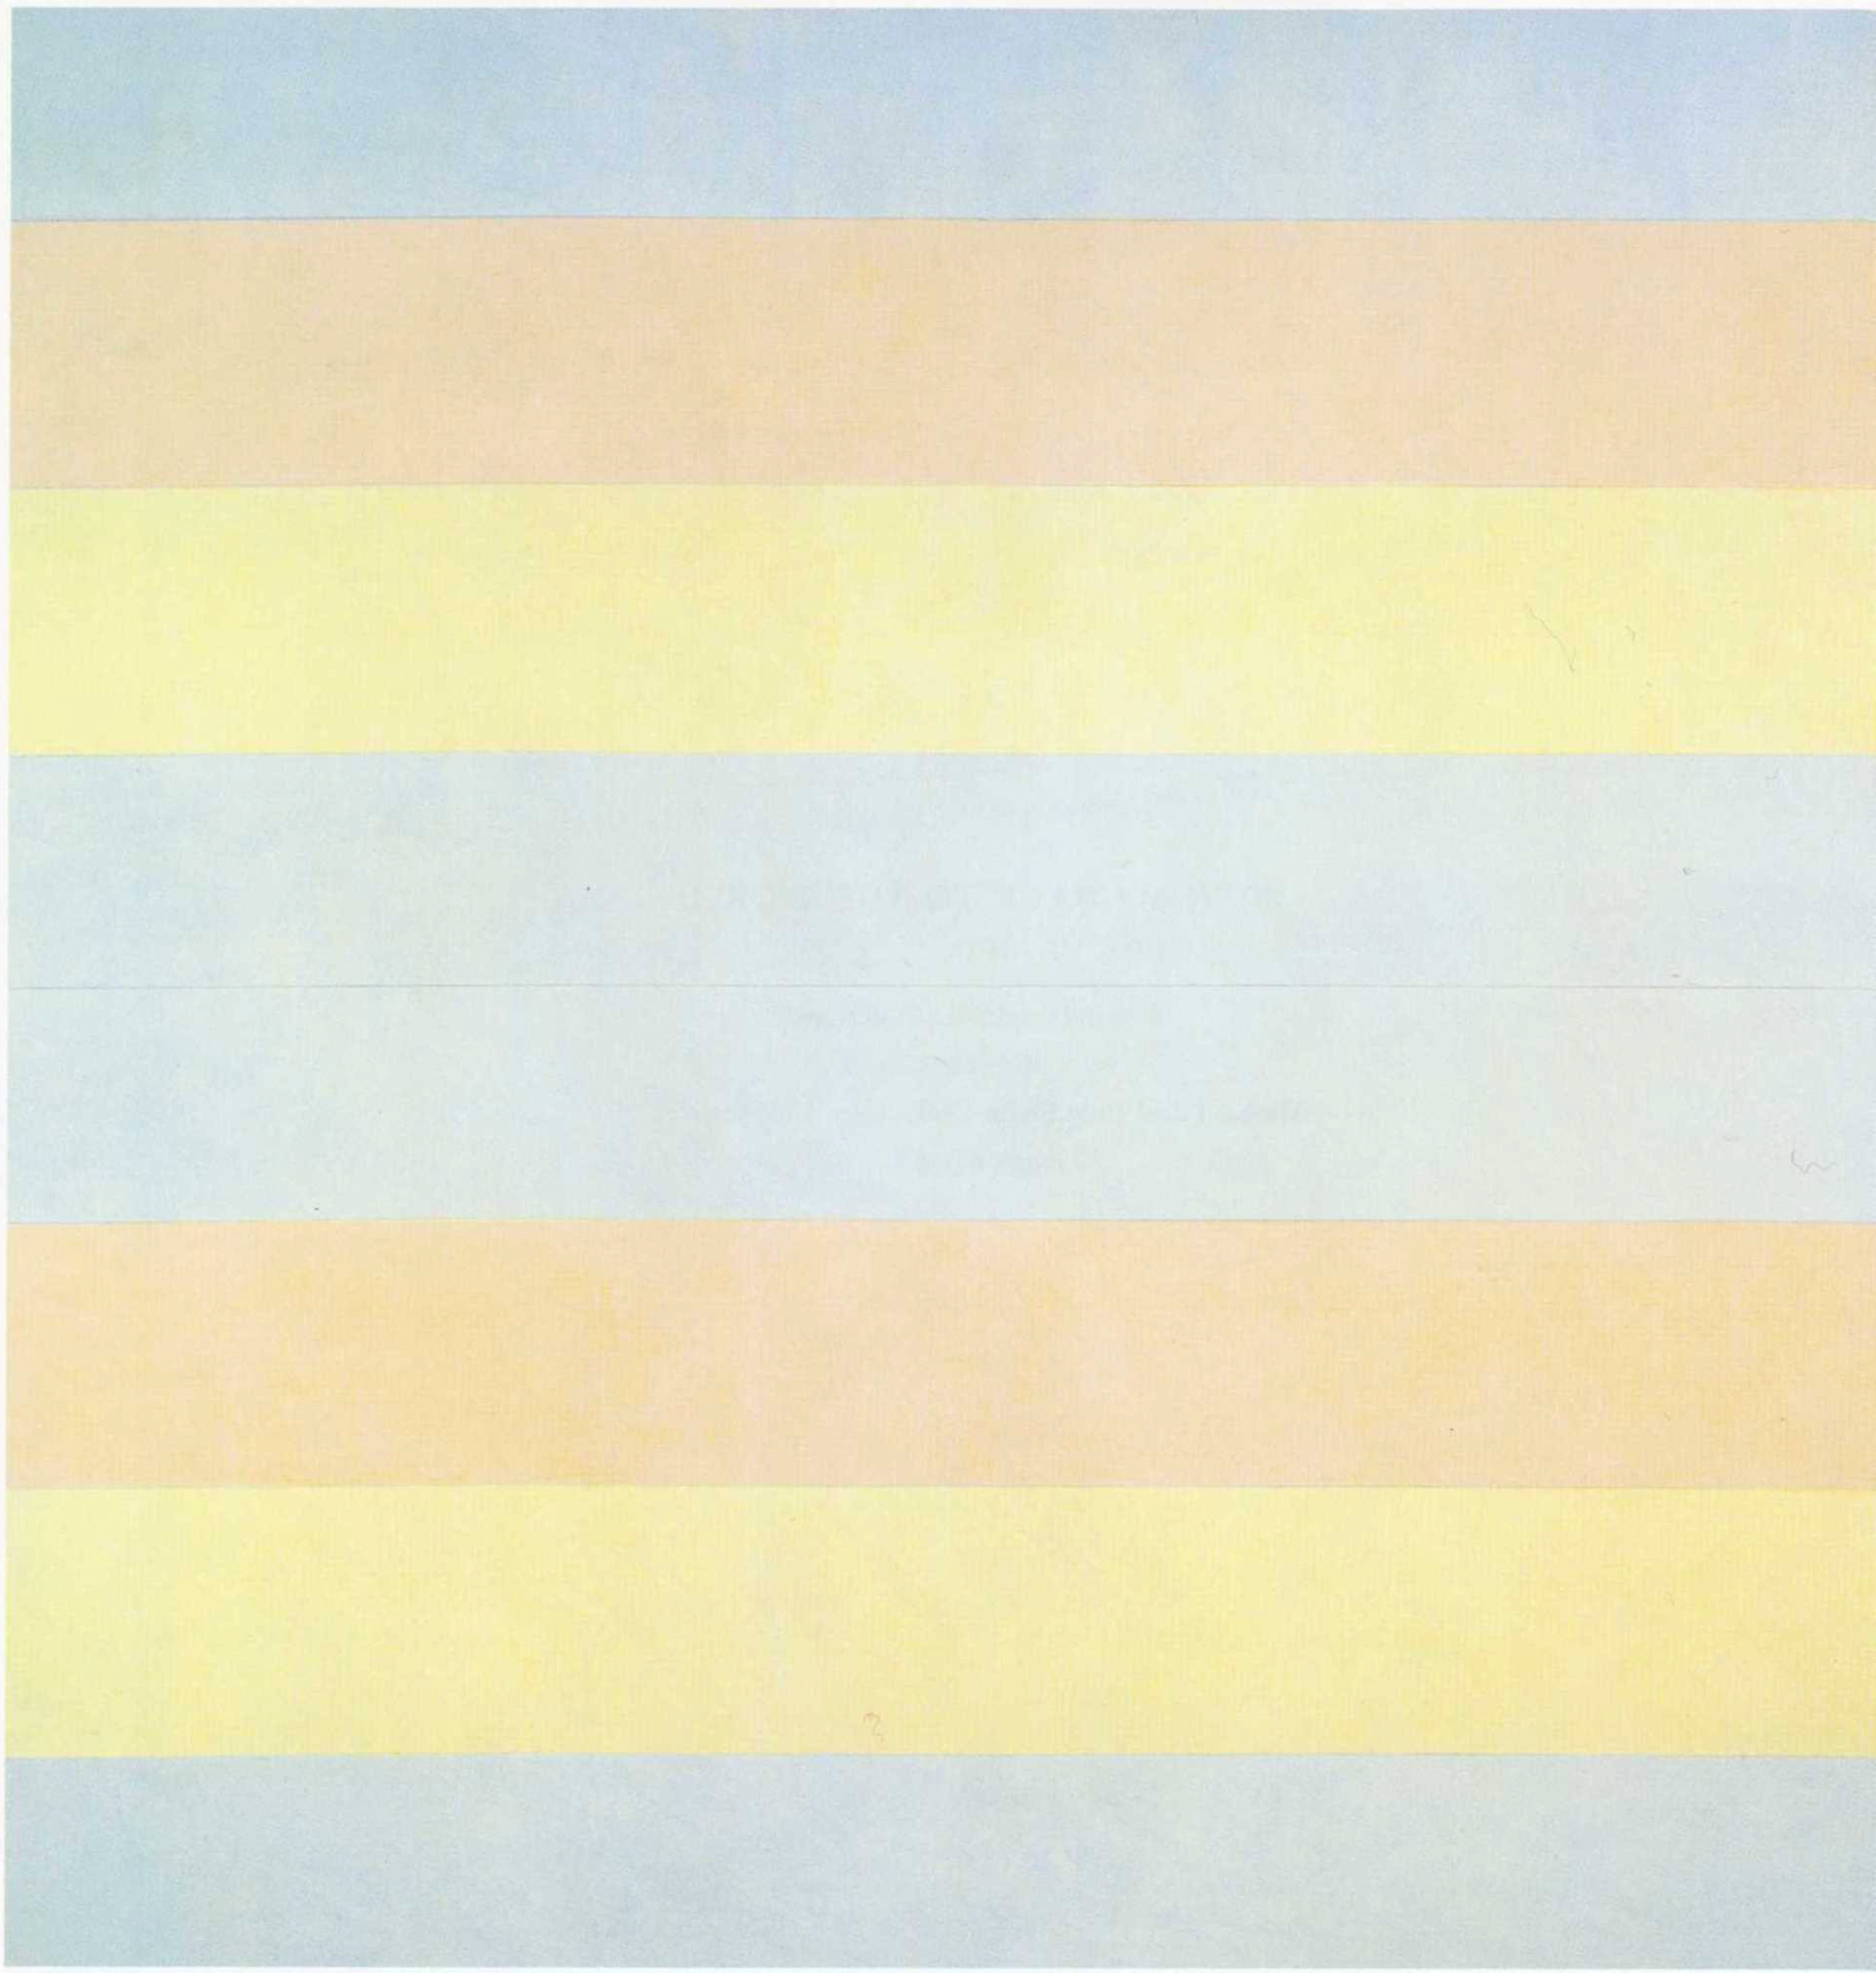 Agnes Martin, With my Back to the World